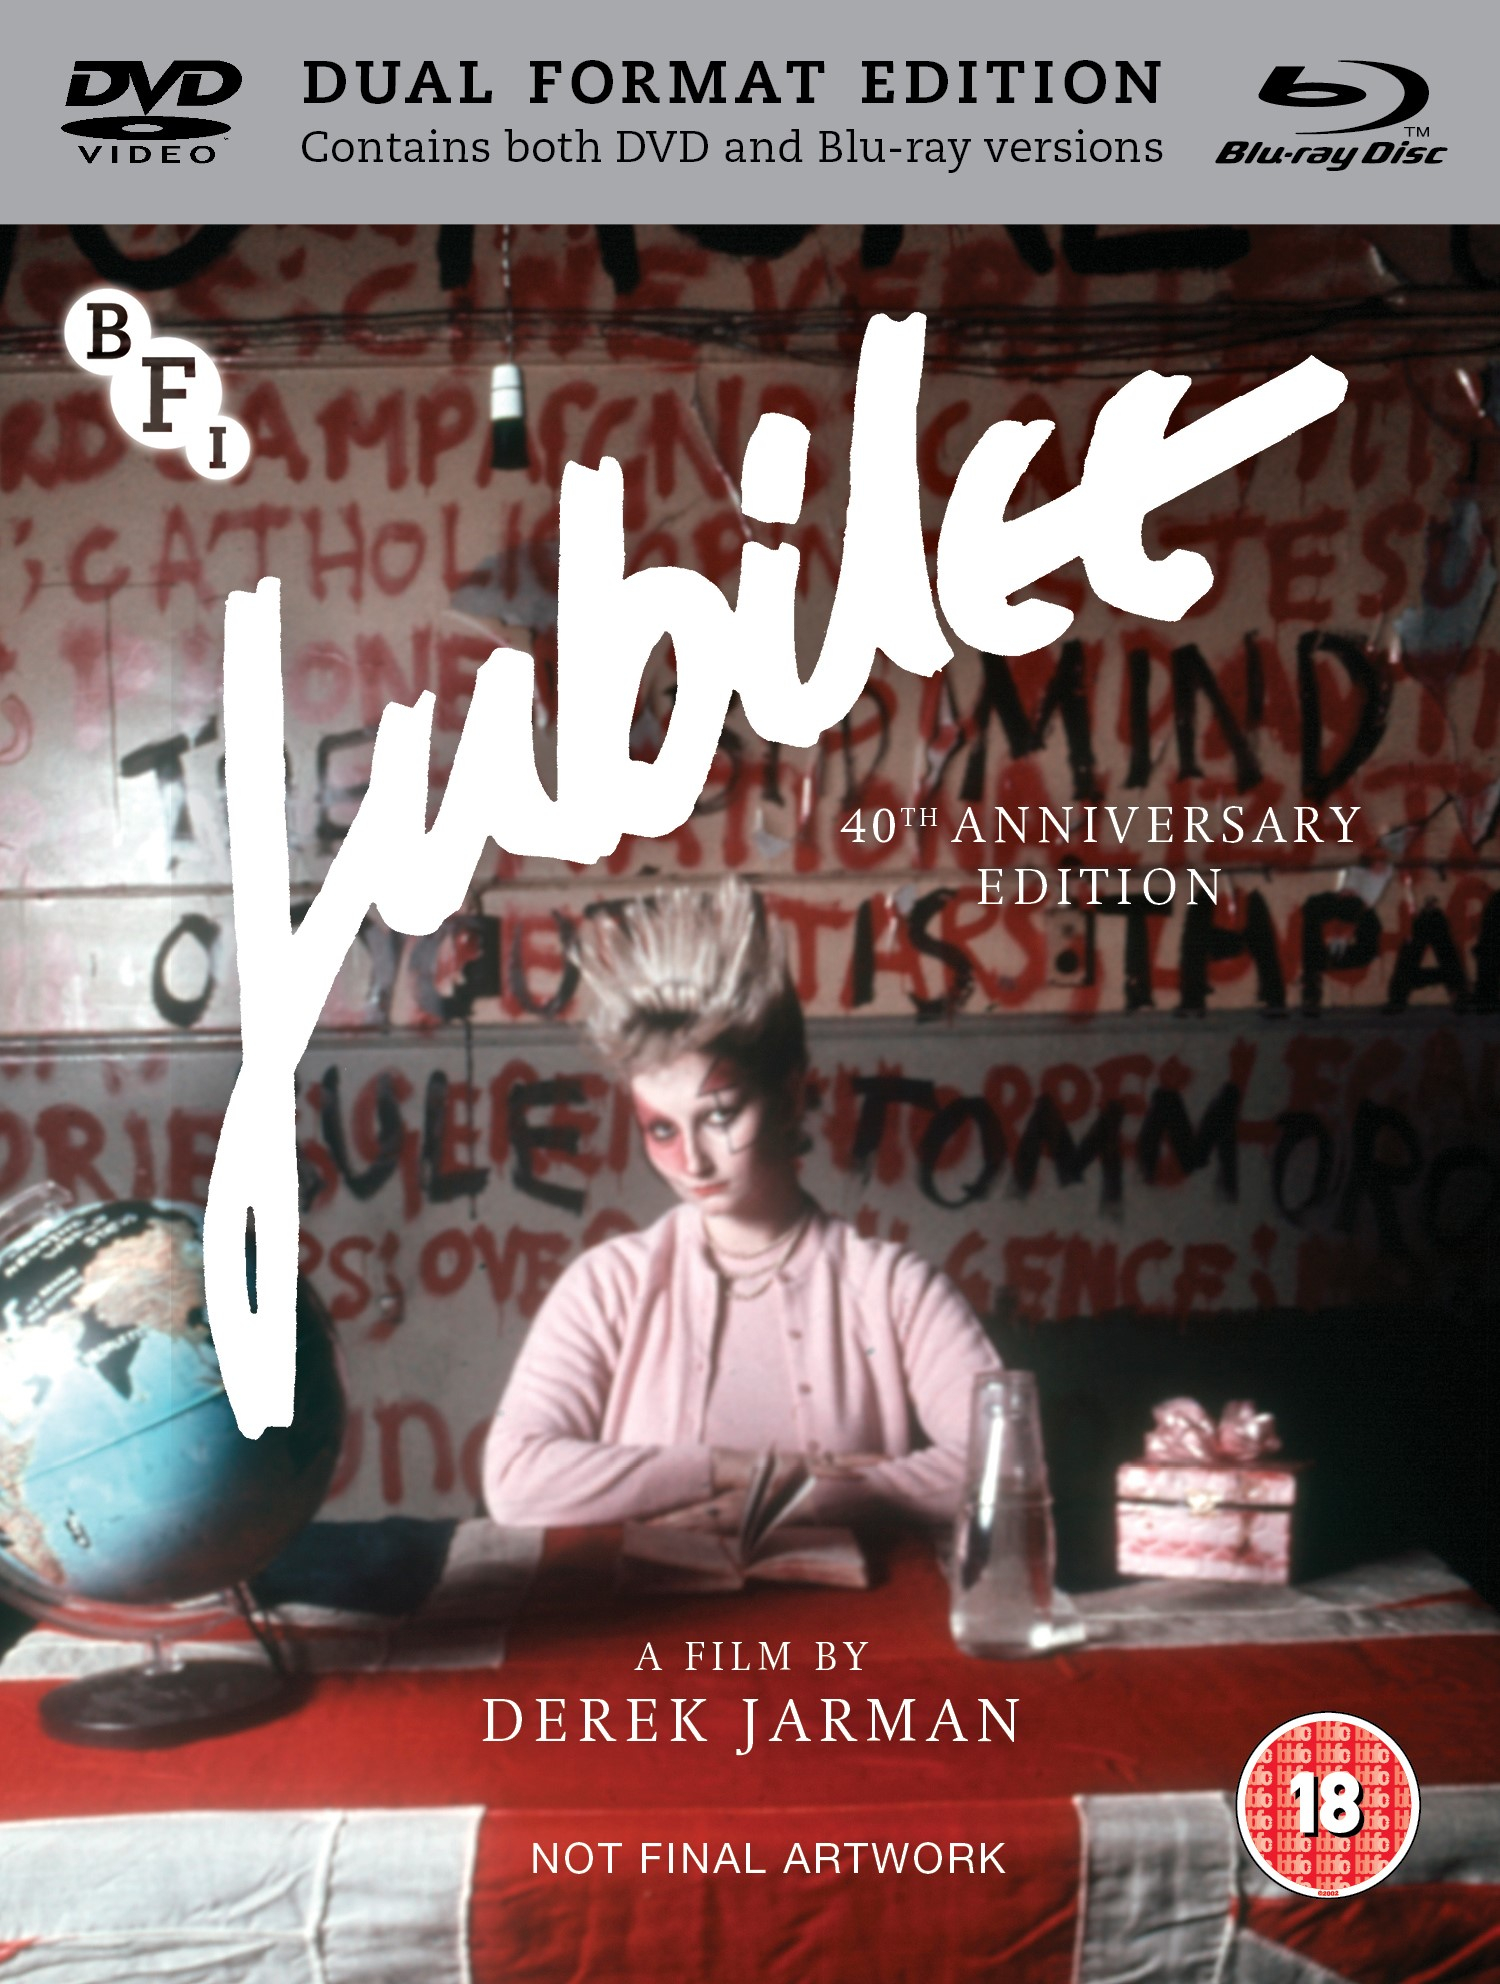 Buy PRE-ORDER Jubilee 40th Anniversary Edition (Dual Format Edition)